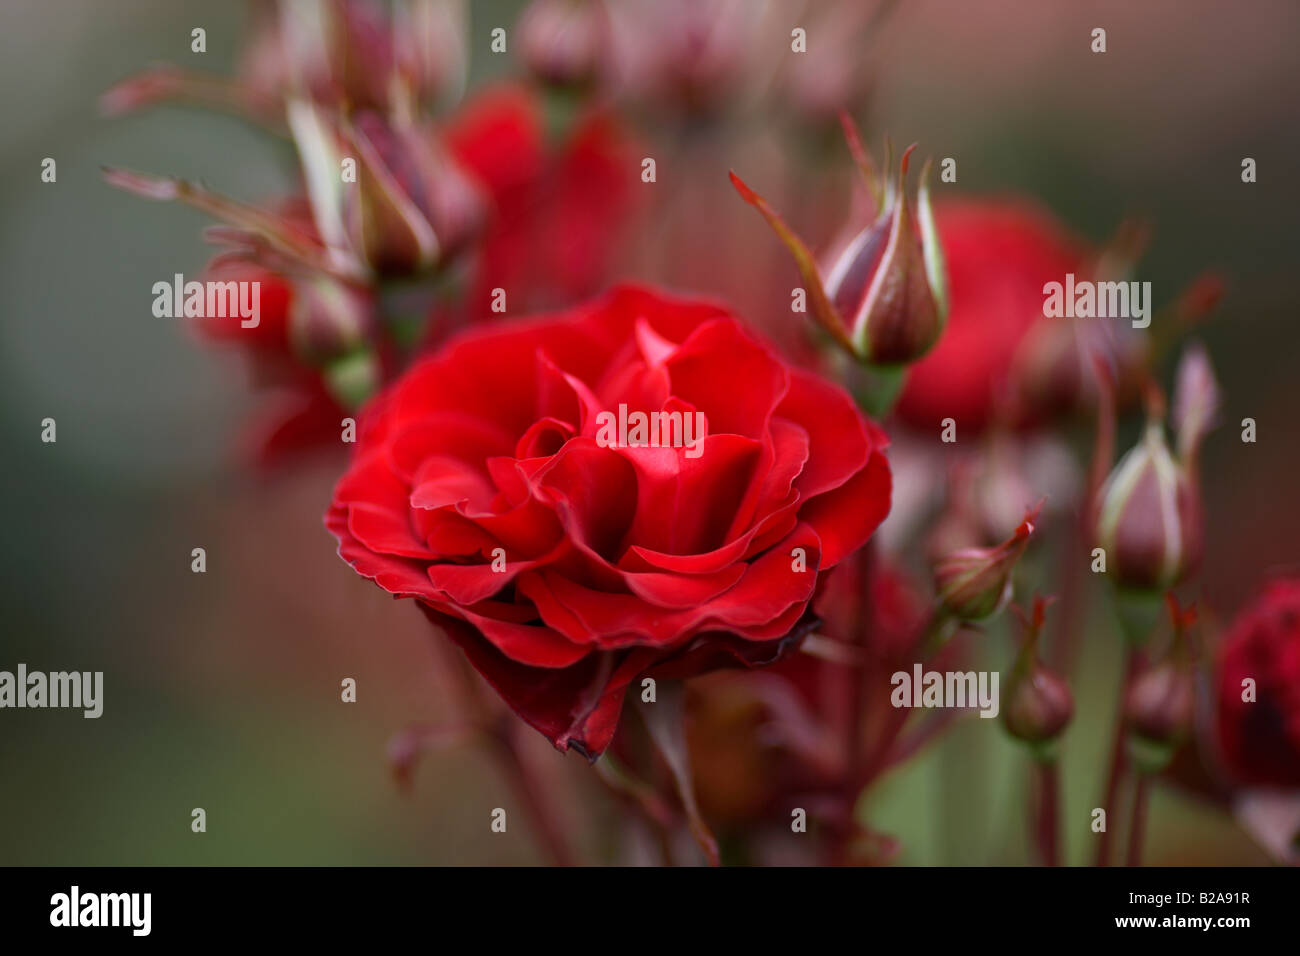 red caviar red rose flower buds and stems - Stock Image